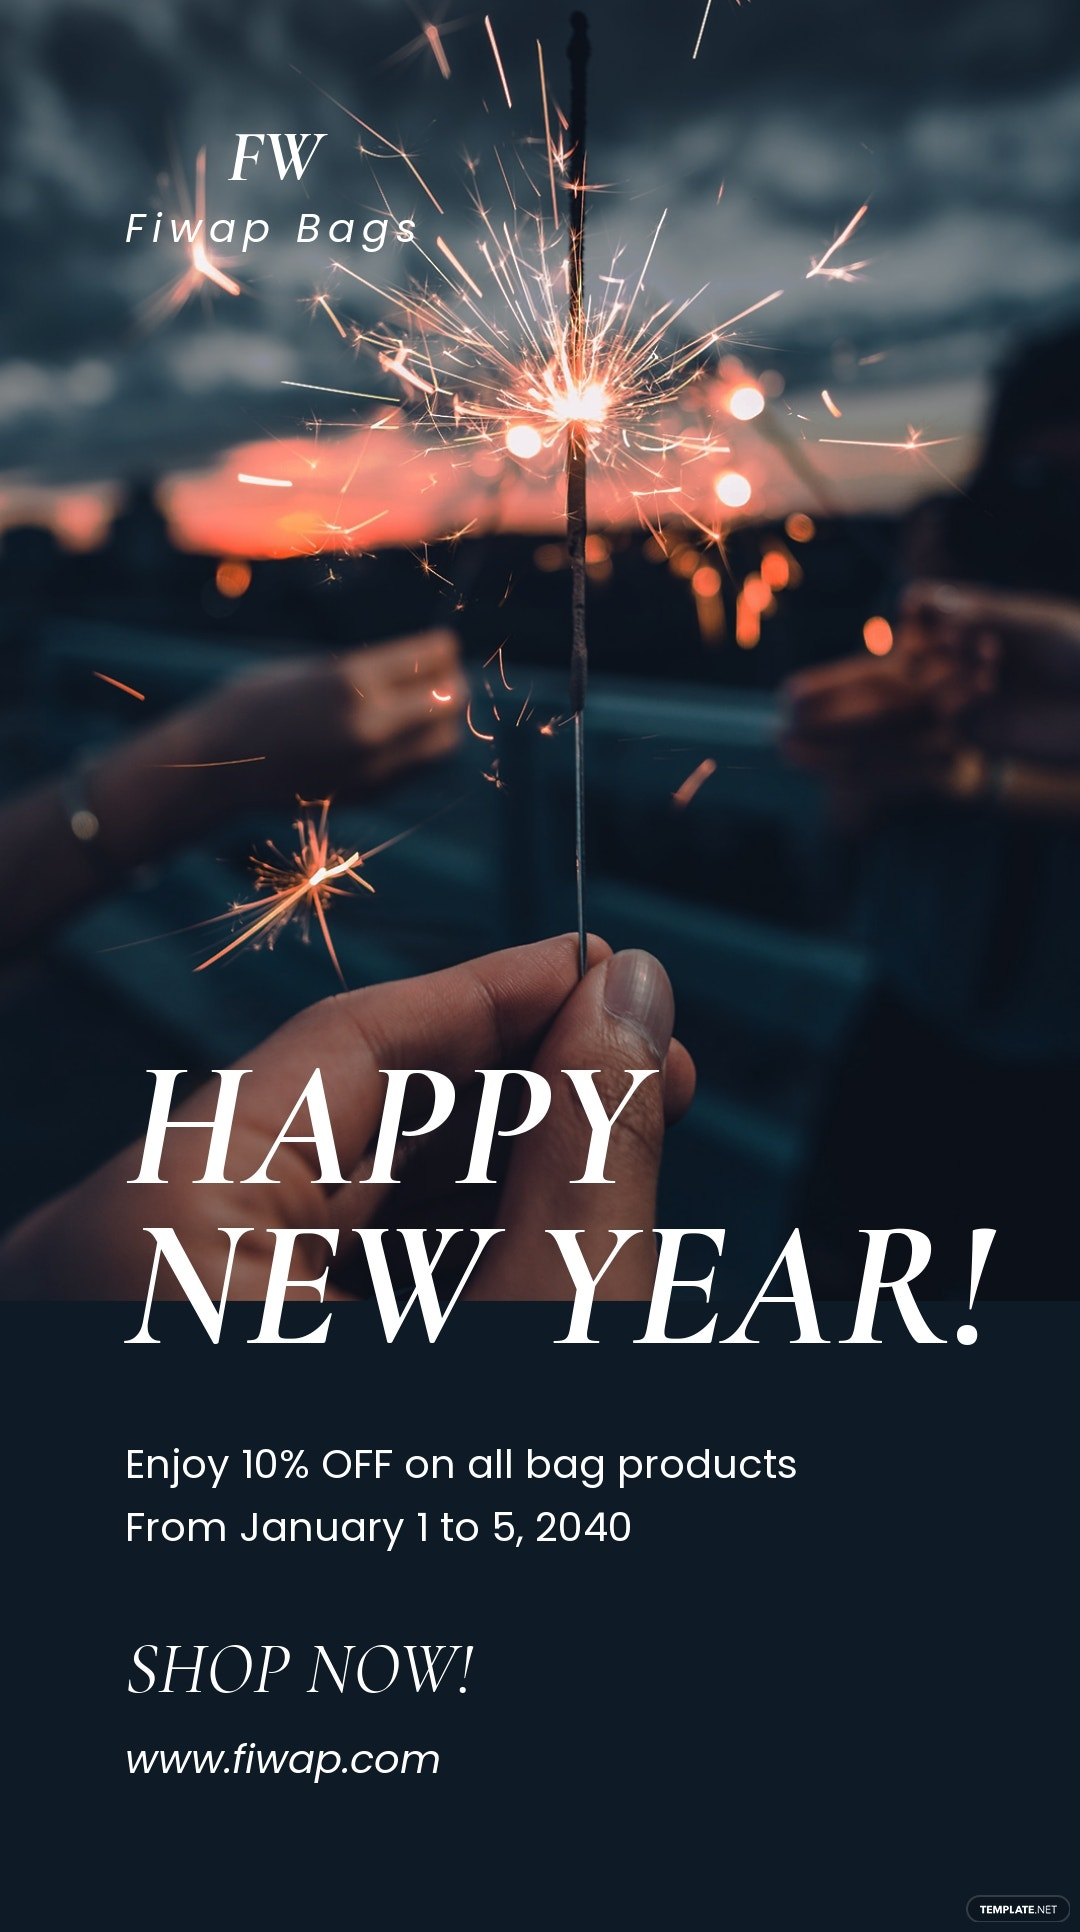 Happy New Year Instagram Story Template.jpe